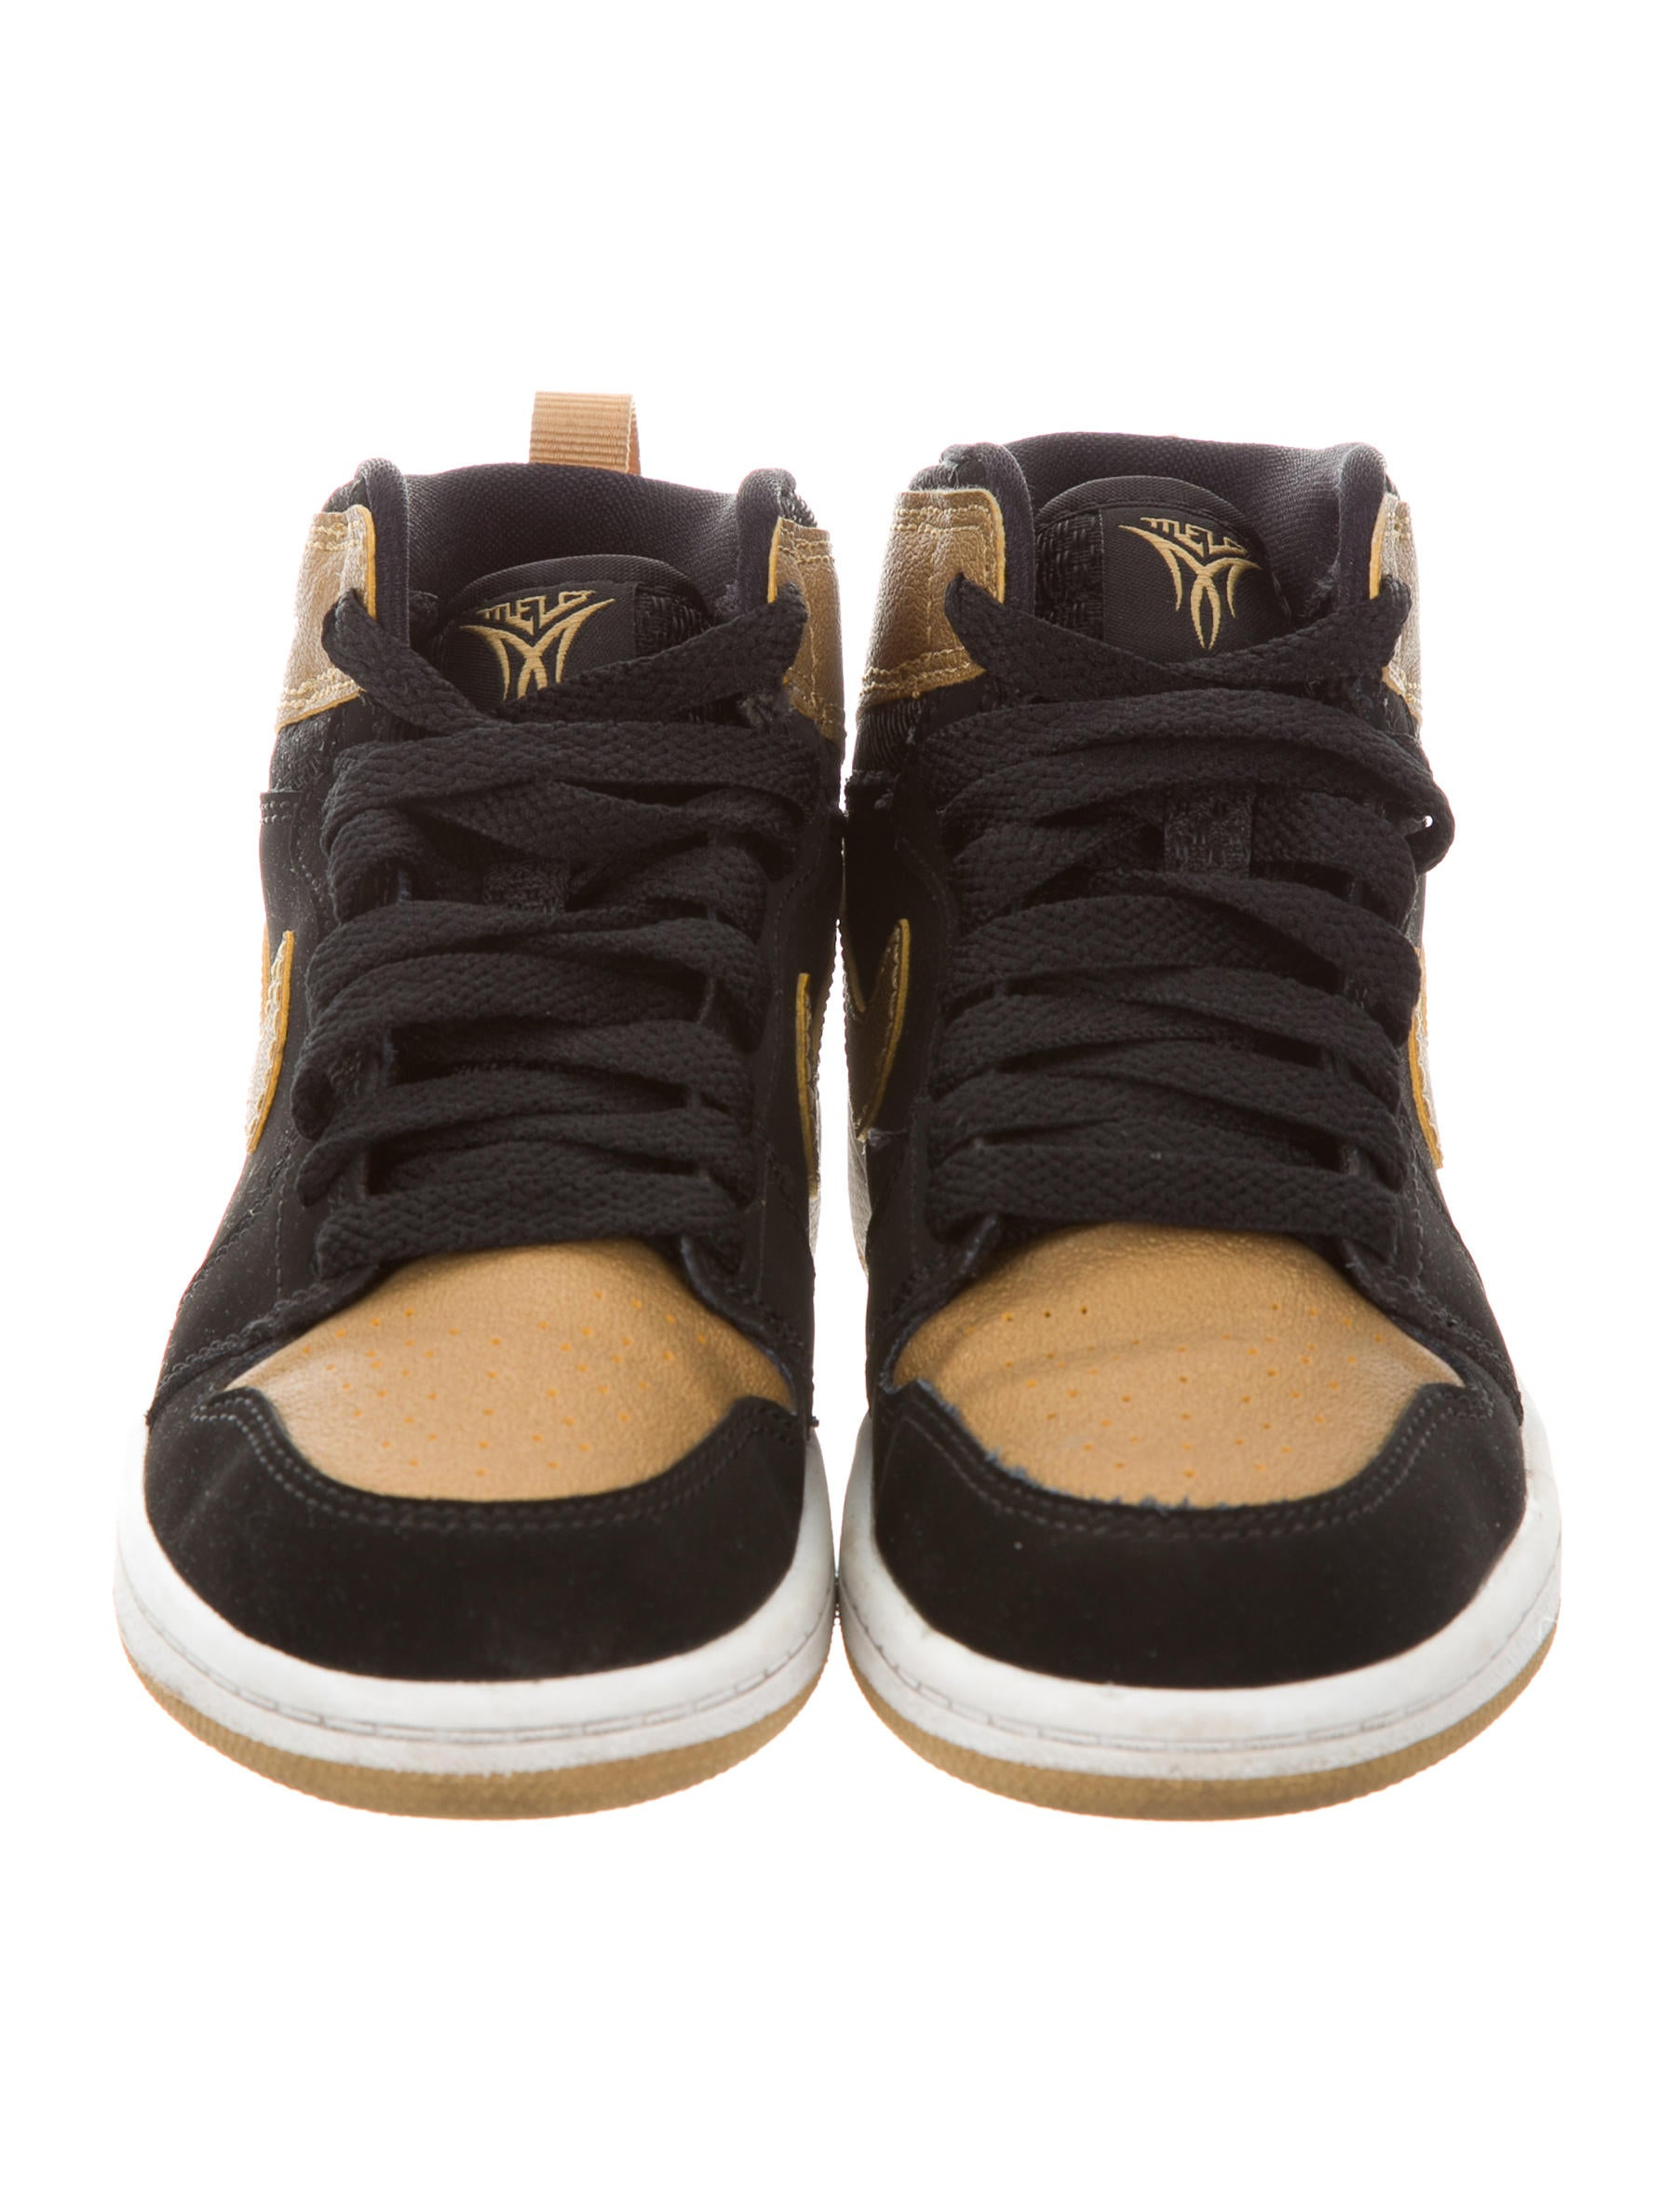 Nike Air Jordan Boys 1 Retro High Top Sneakers Boys